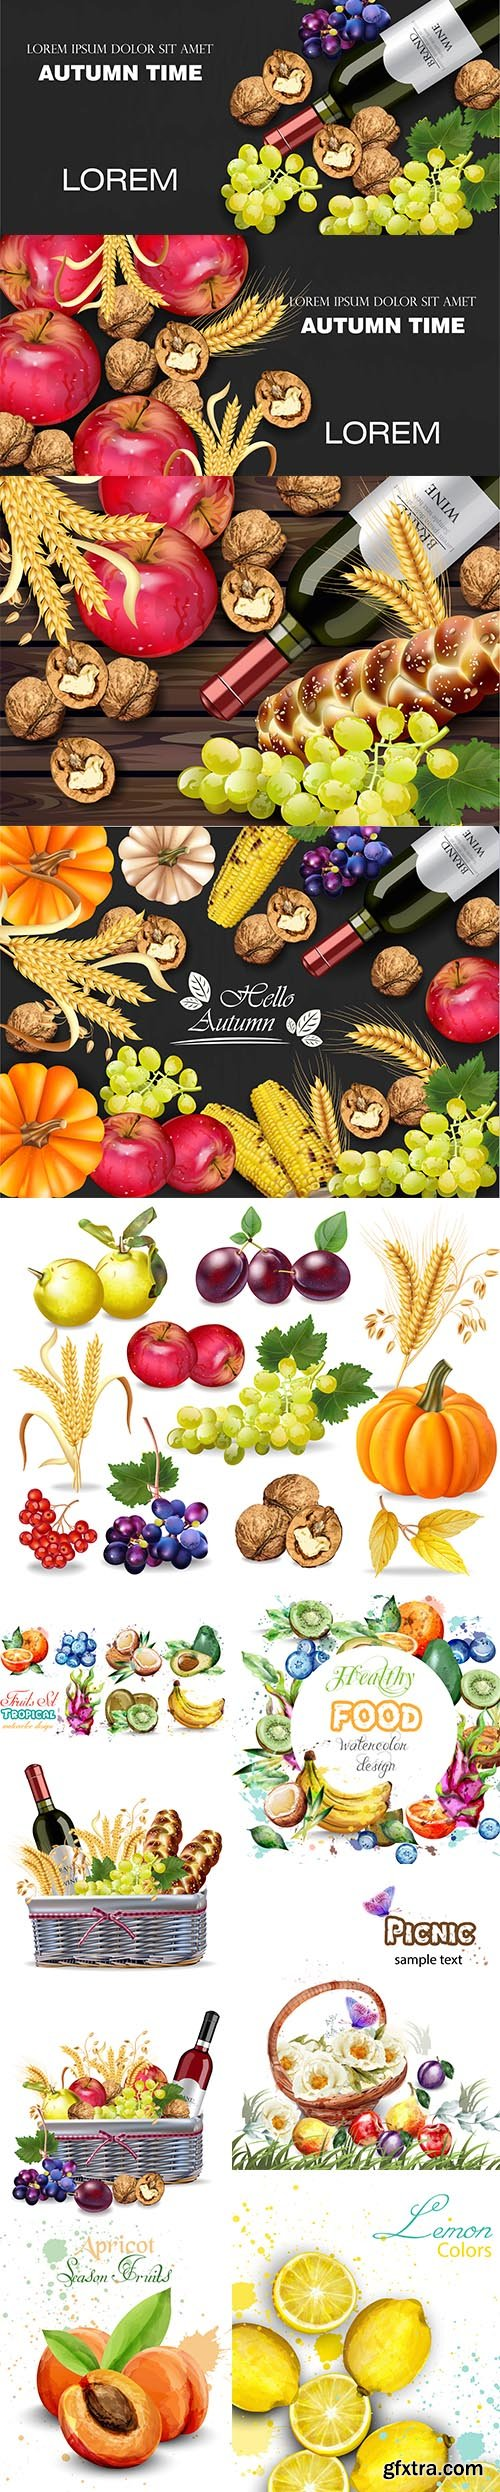 Watercolor Autumn Fruits and Vegetables Collection